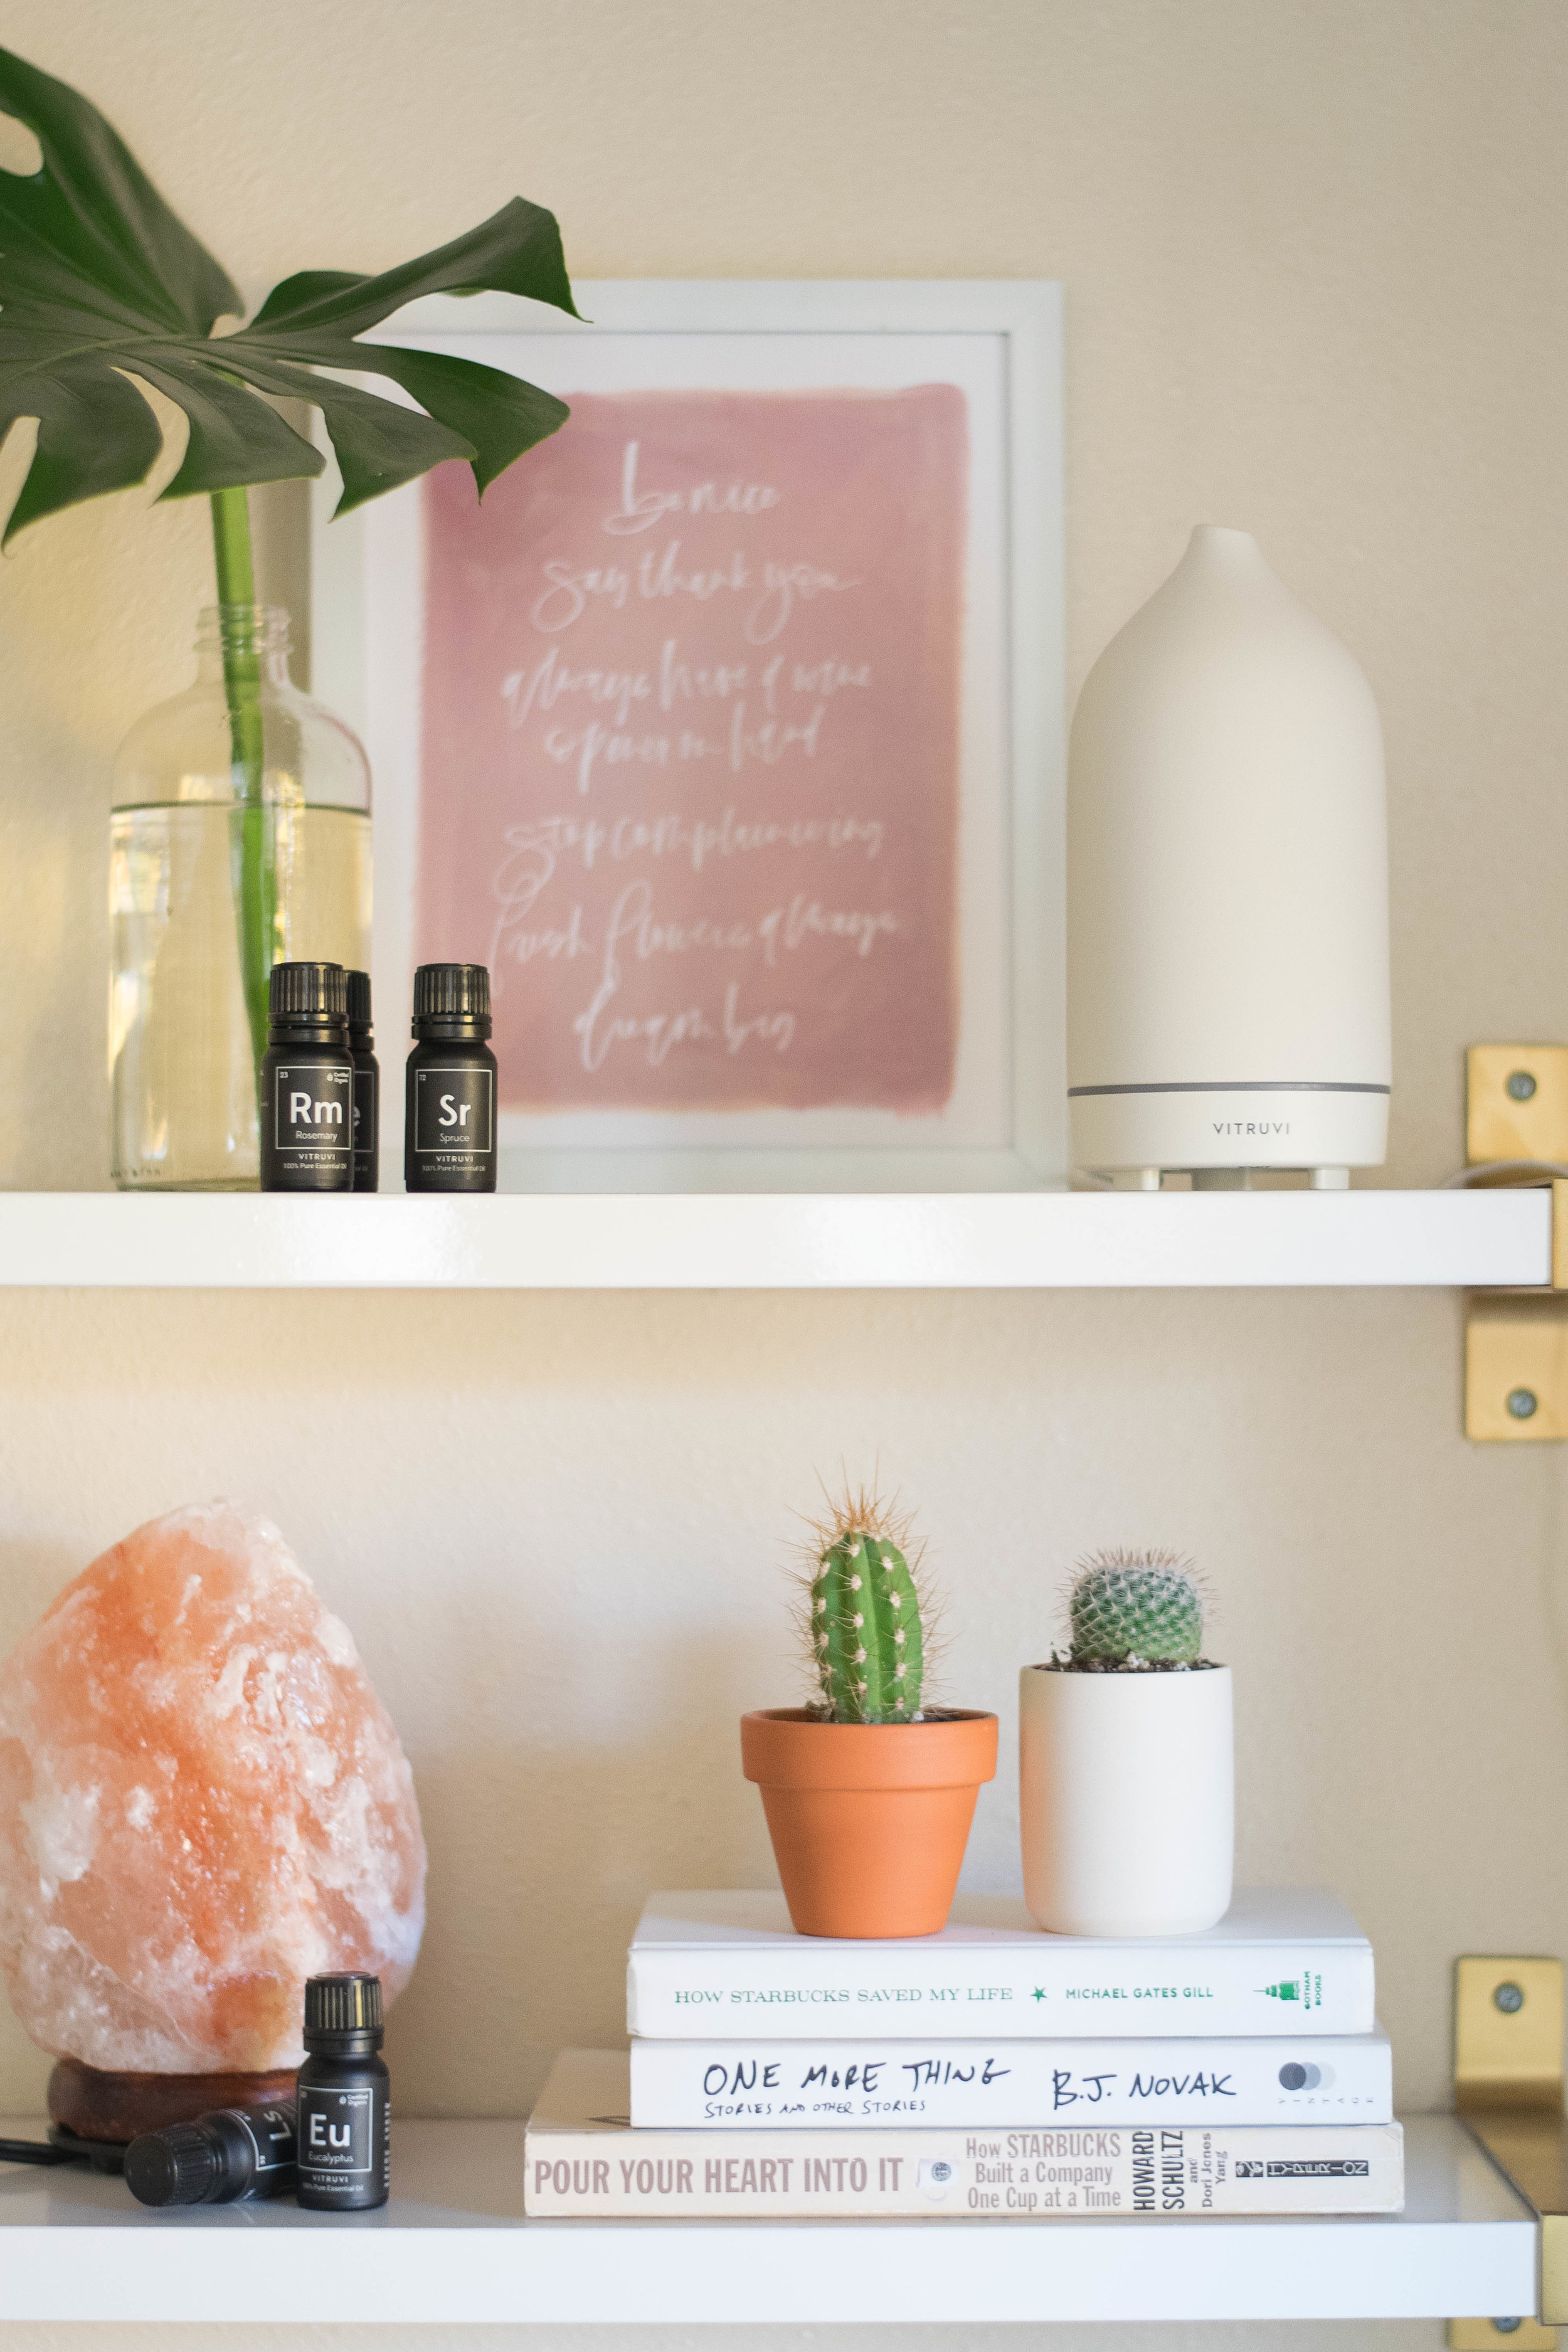 Incorporating Essential Oils Into The Everyday with Vitruvi   All Purpose Flour Child